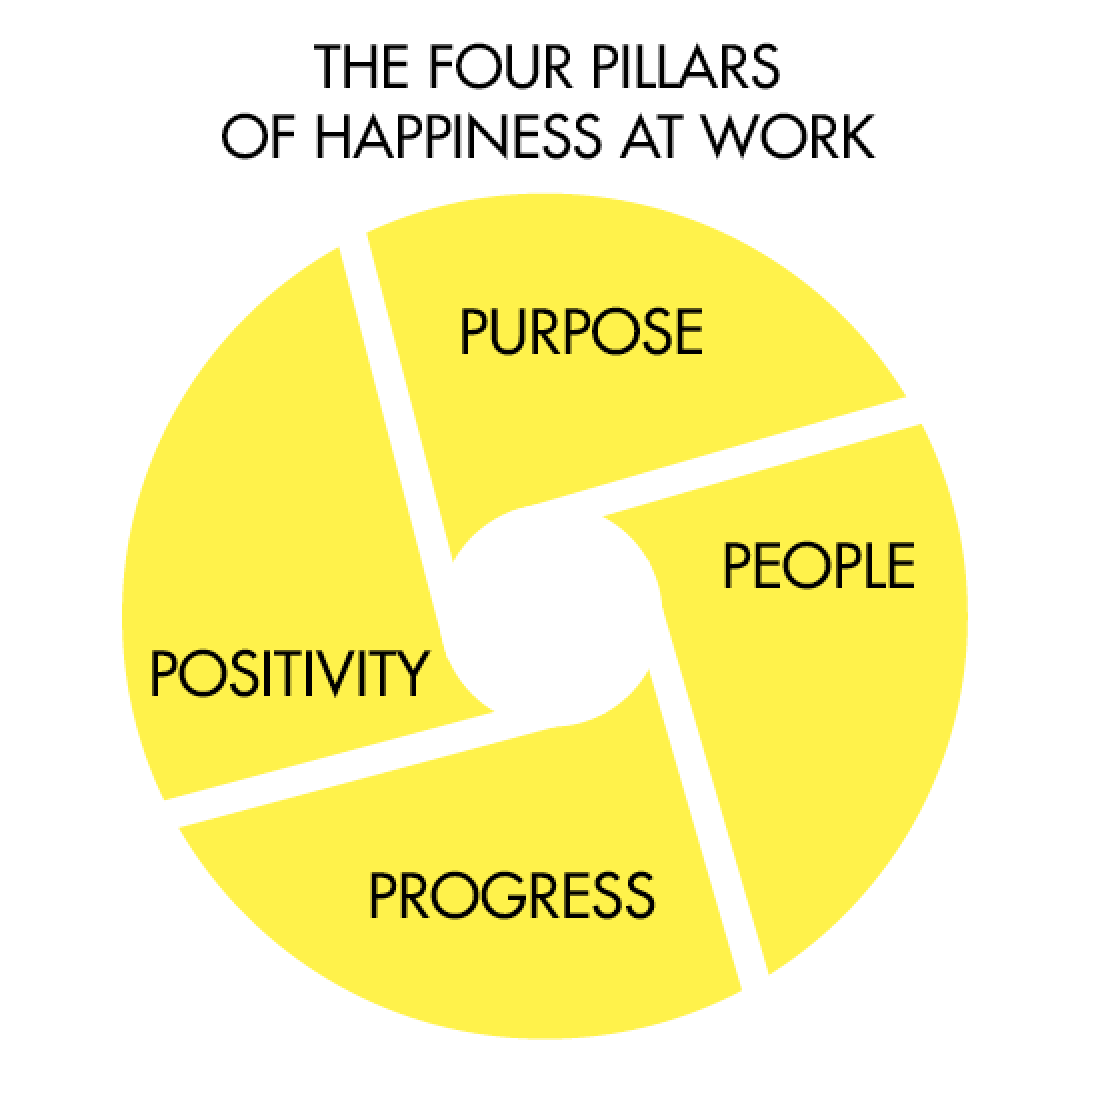 The four pillars of Happiness at Work